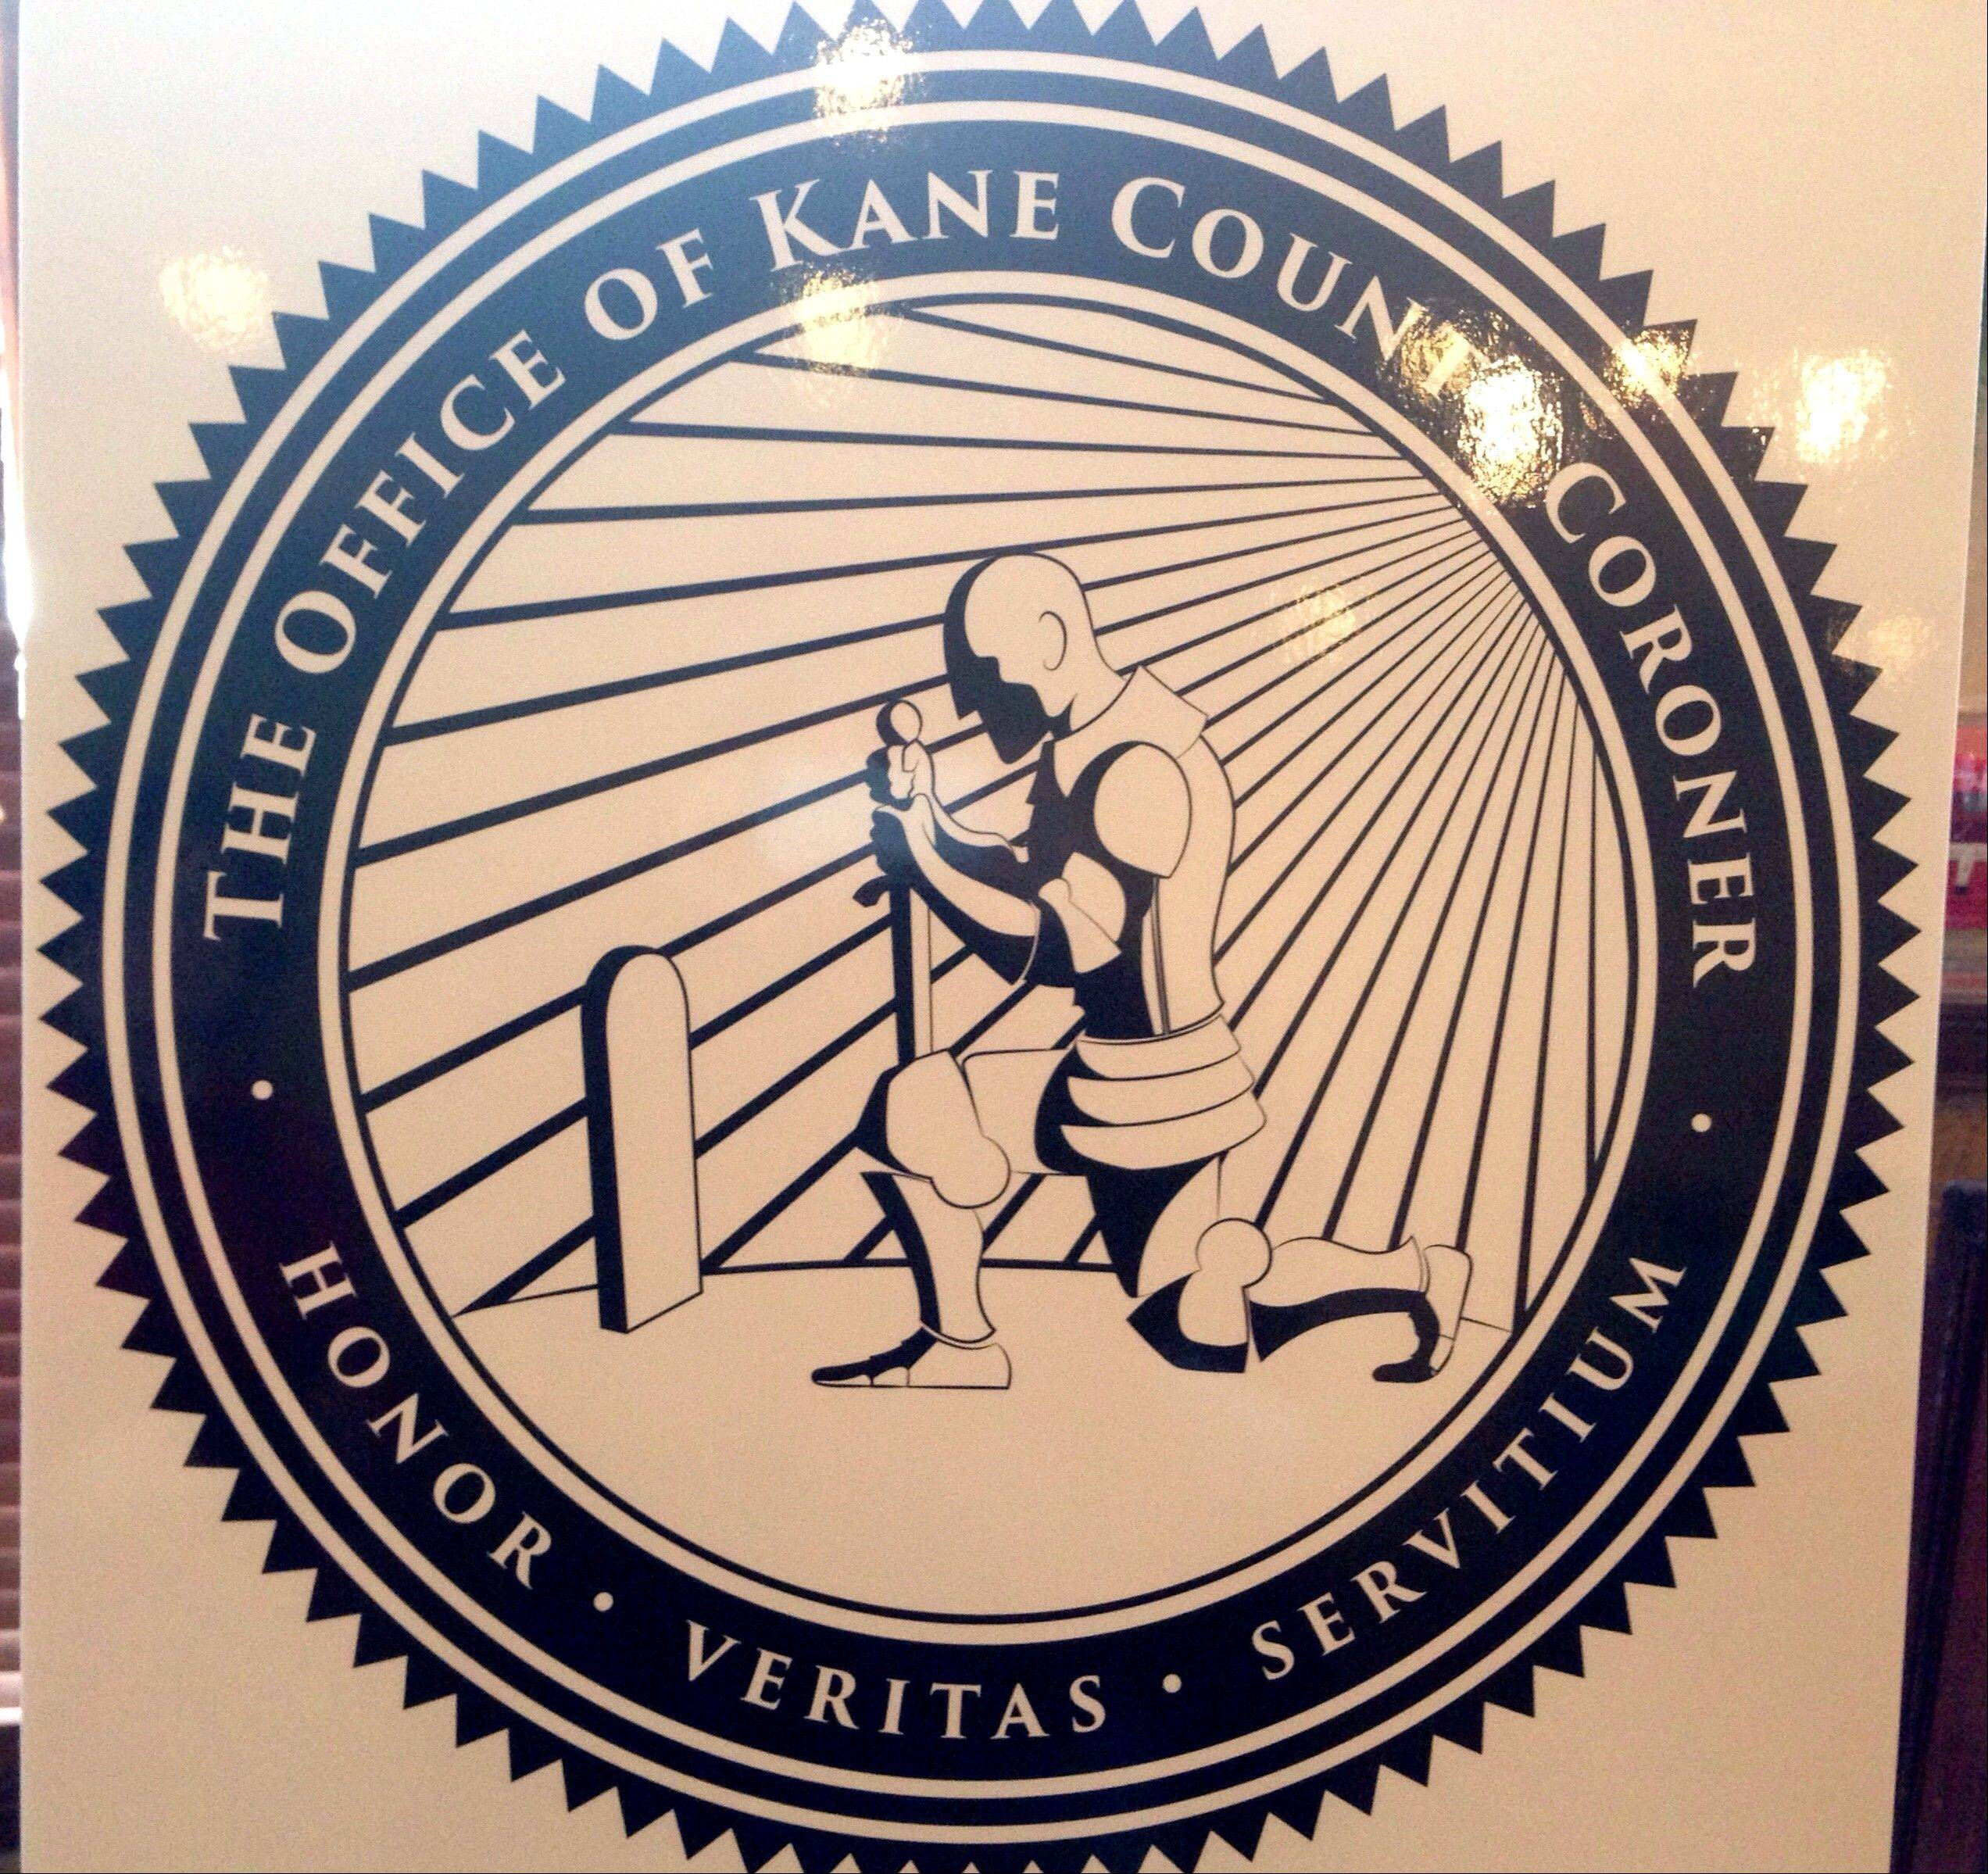 The Kane County Coroner�s office unveiled a new logo Thursday designed to create better understanding of the office�s mission.